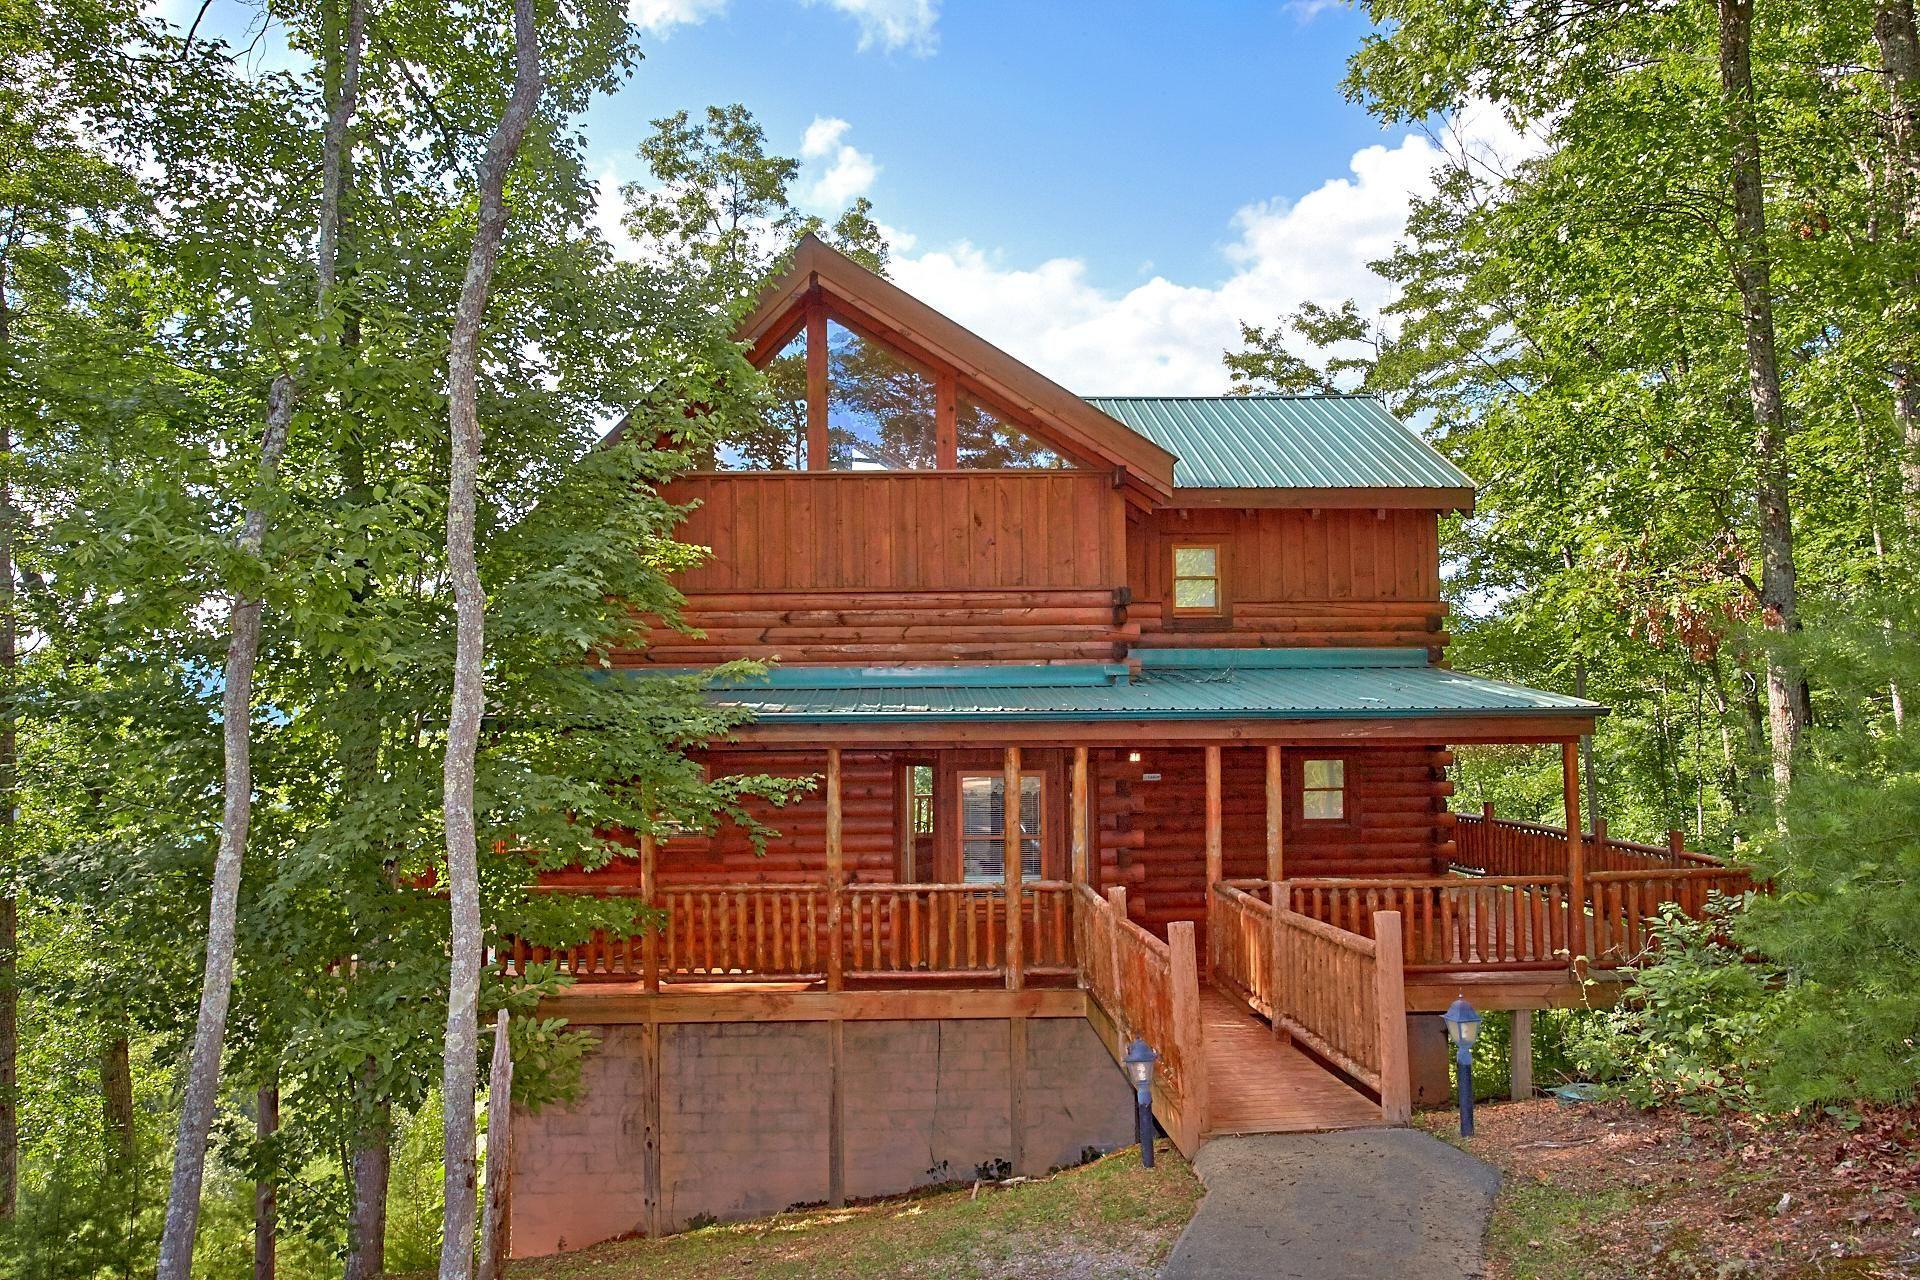 images of new cabins sevierville smoky mountain nestled log inn mountains bedroom rental rentals cabin